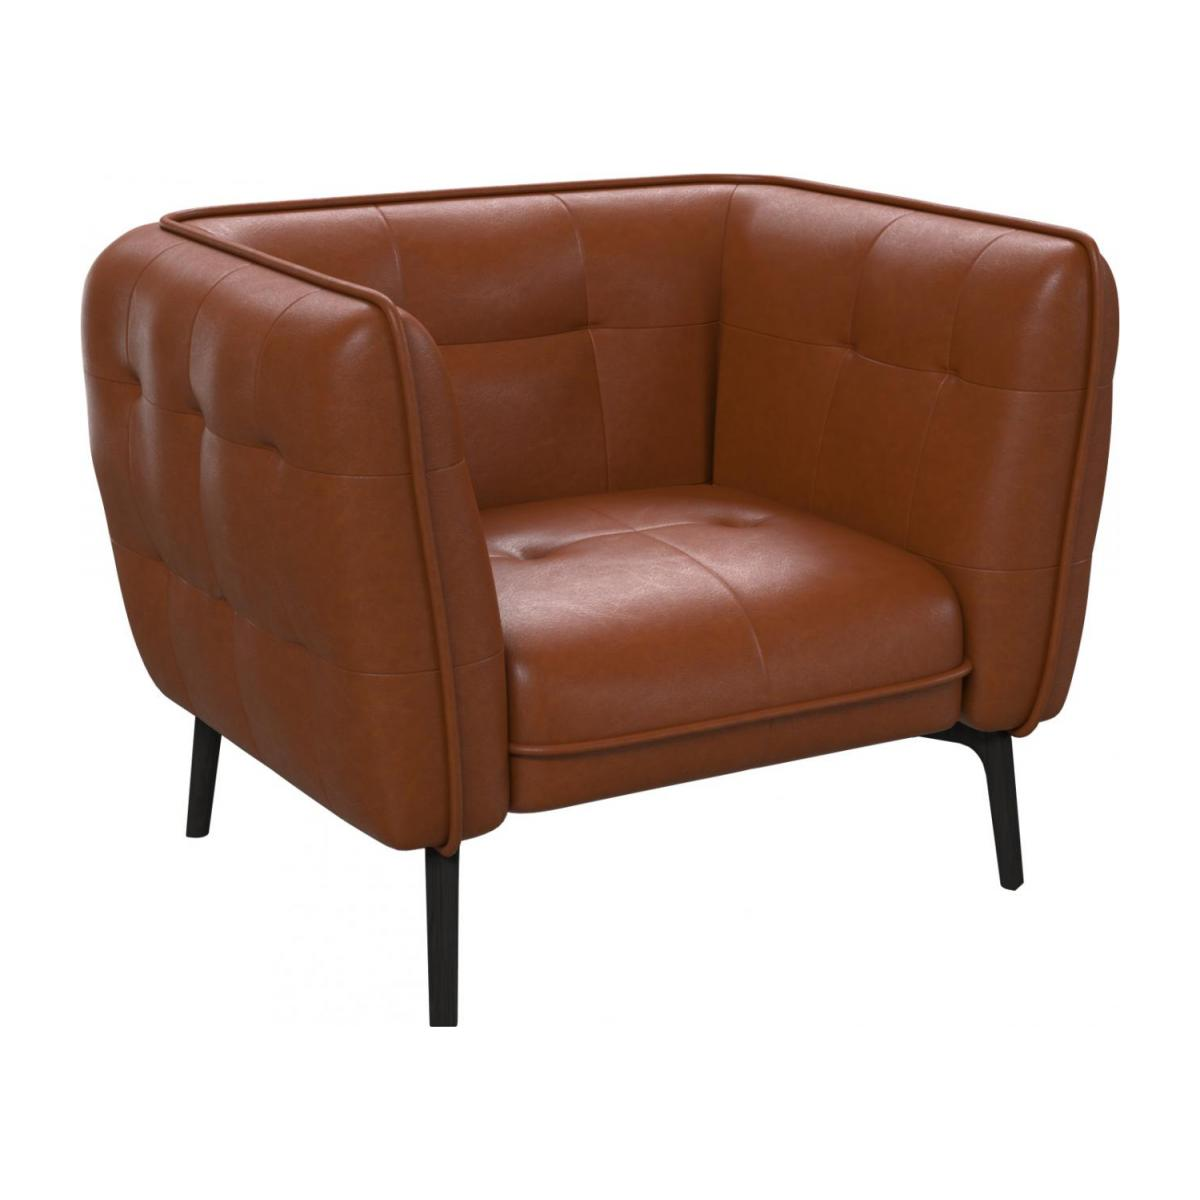 Armchair in Vintage aniline leather, old chestnut and dark feet n°1